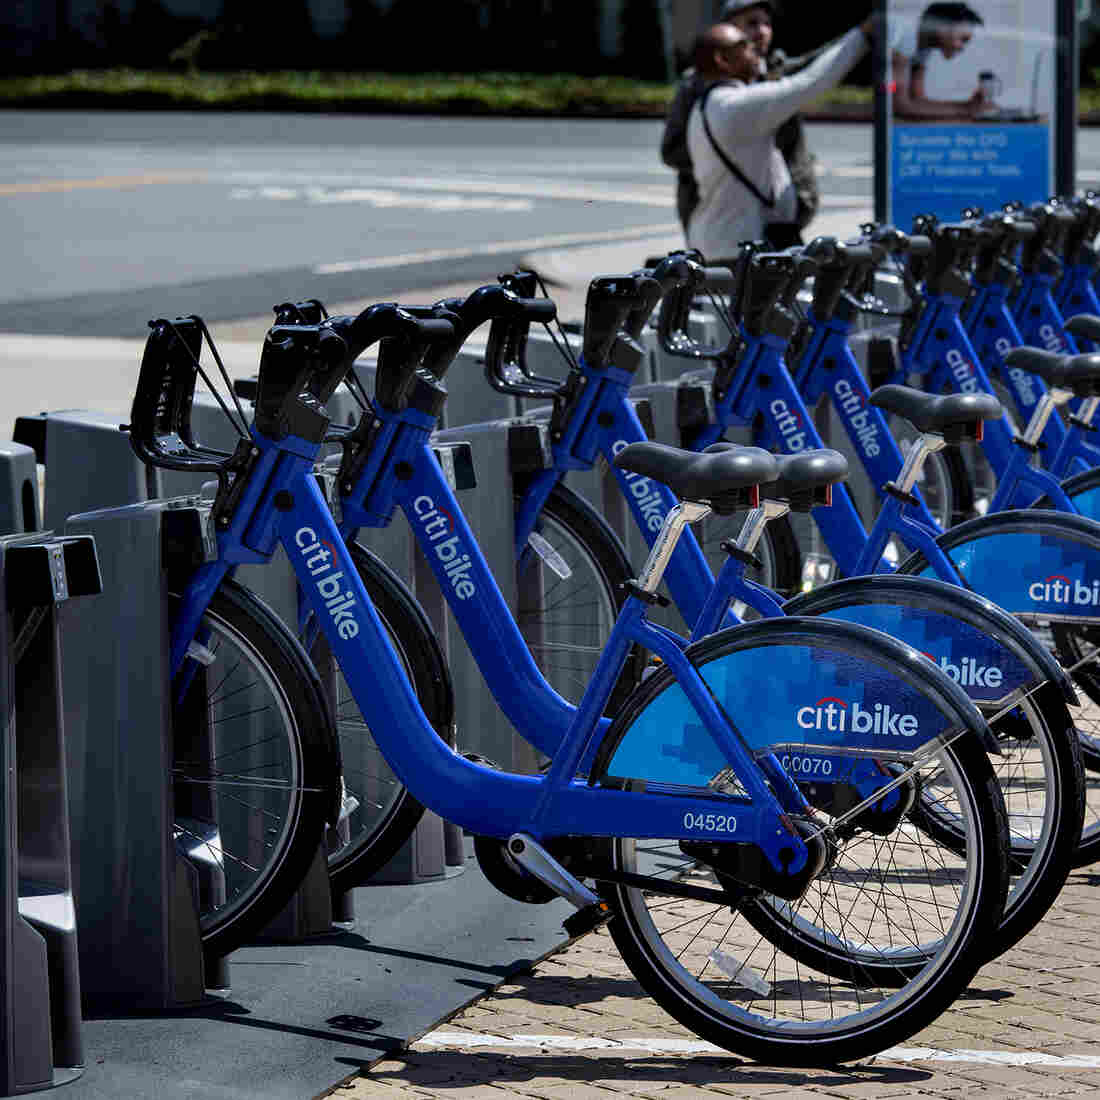 Bike-Sharing Programs Roll Into Cities Across The U.S.